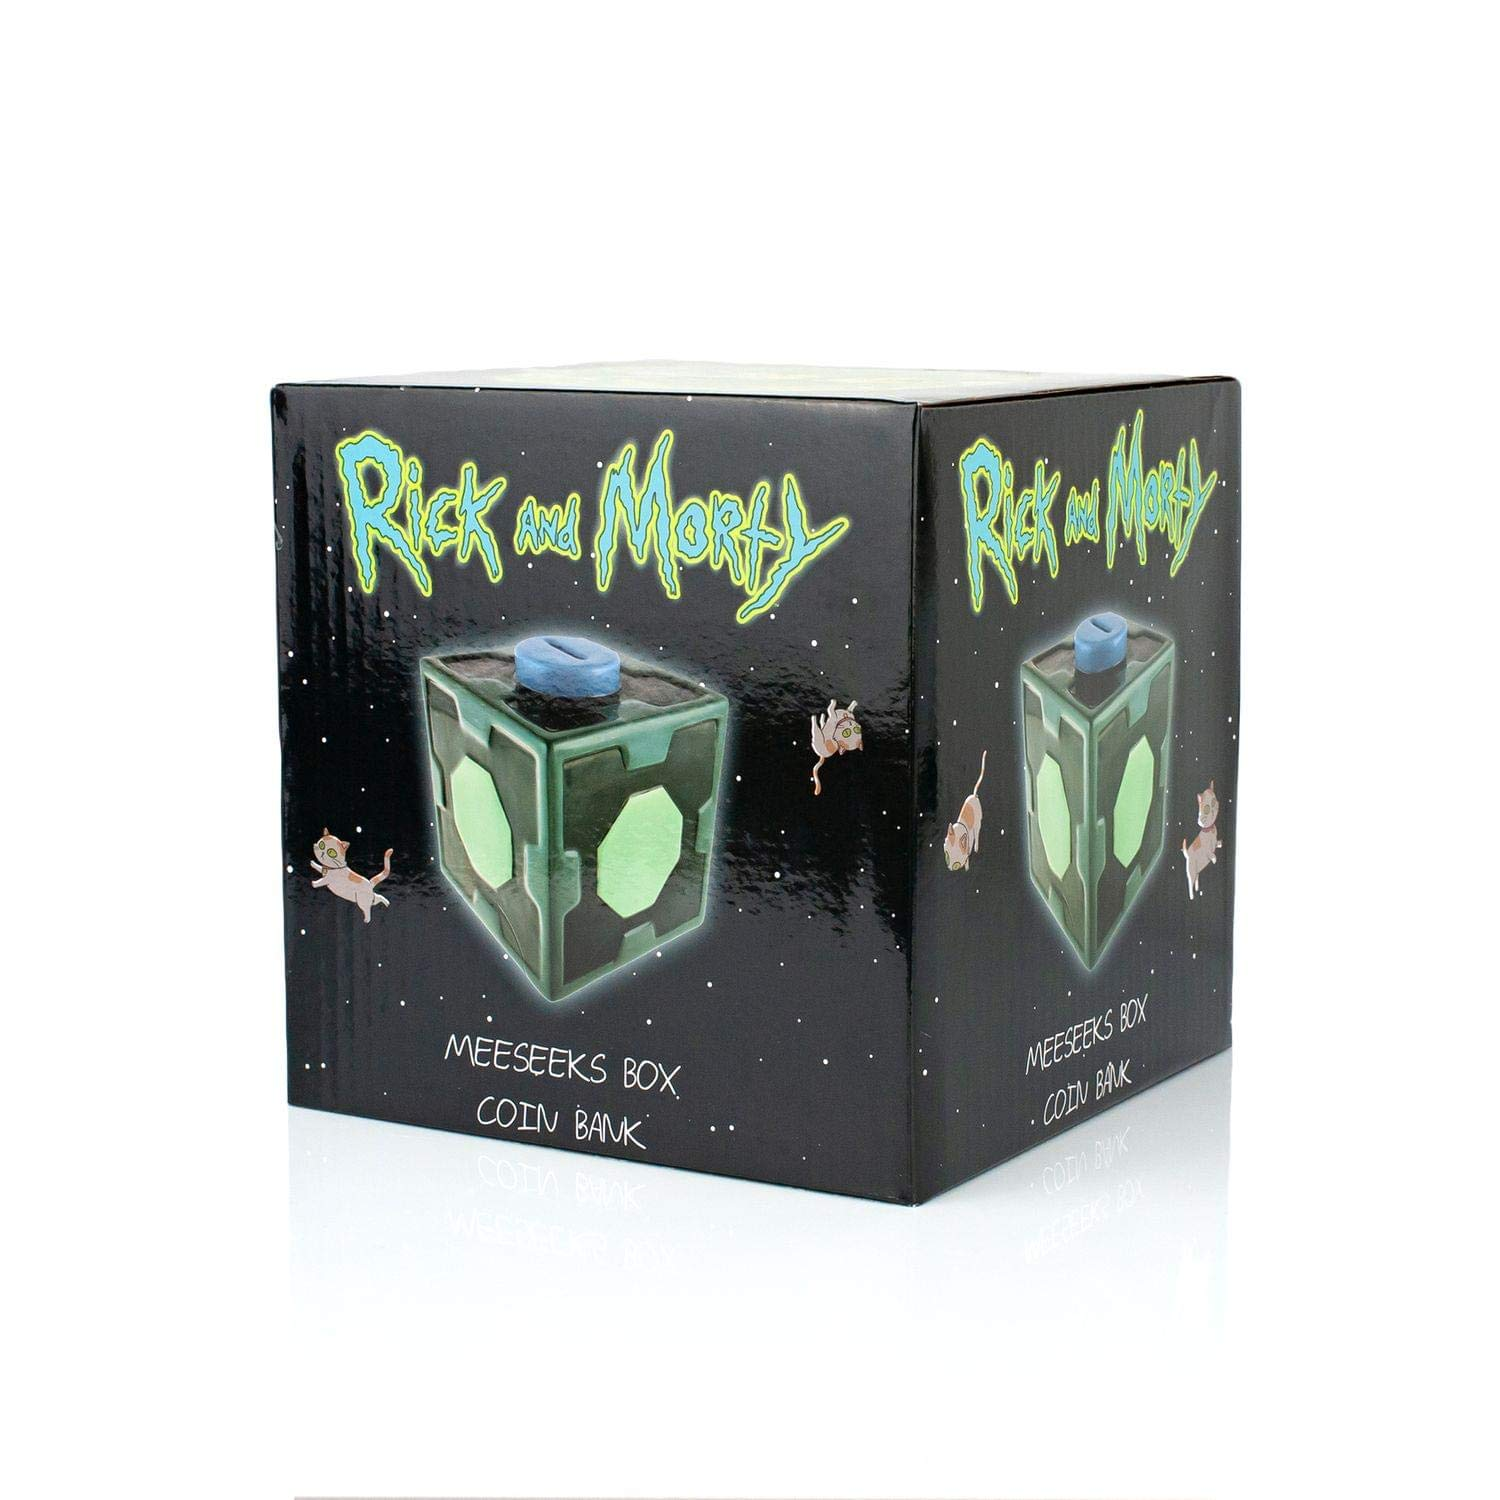 Rick and Morty Animated TV Series In A Flying Saucer Refrigerator Magnet  UNUSED